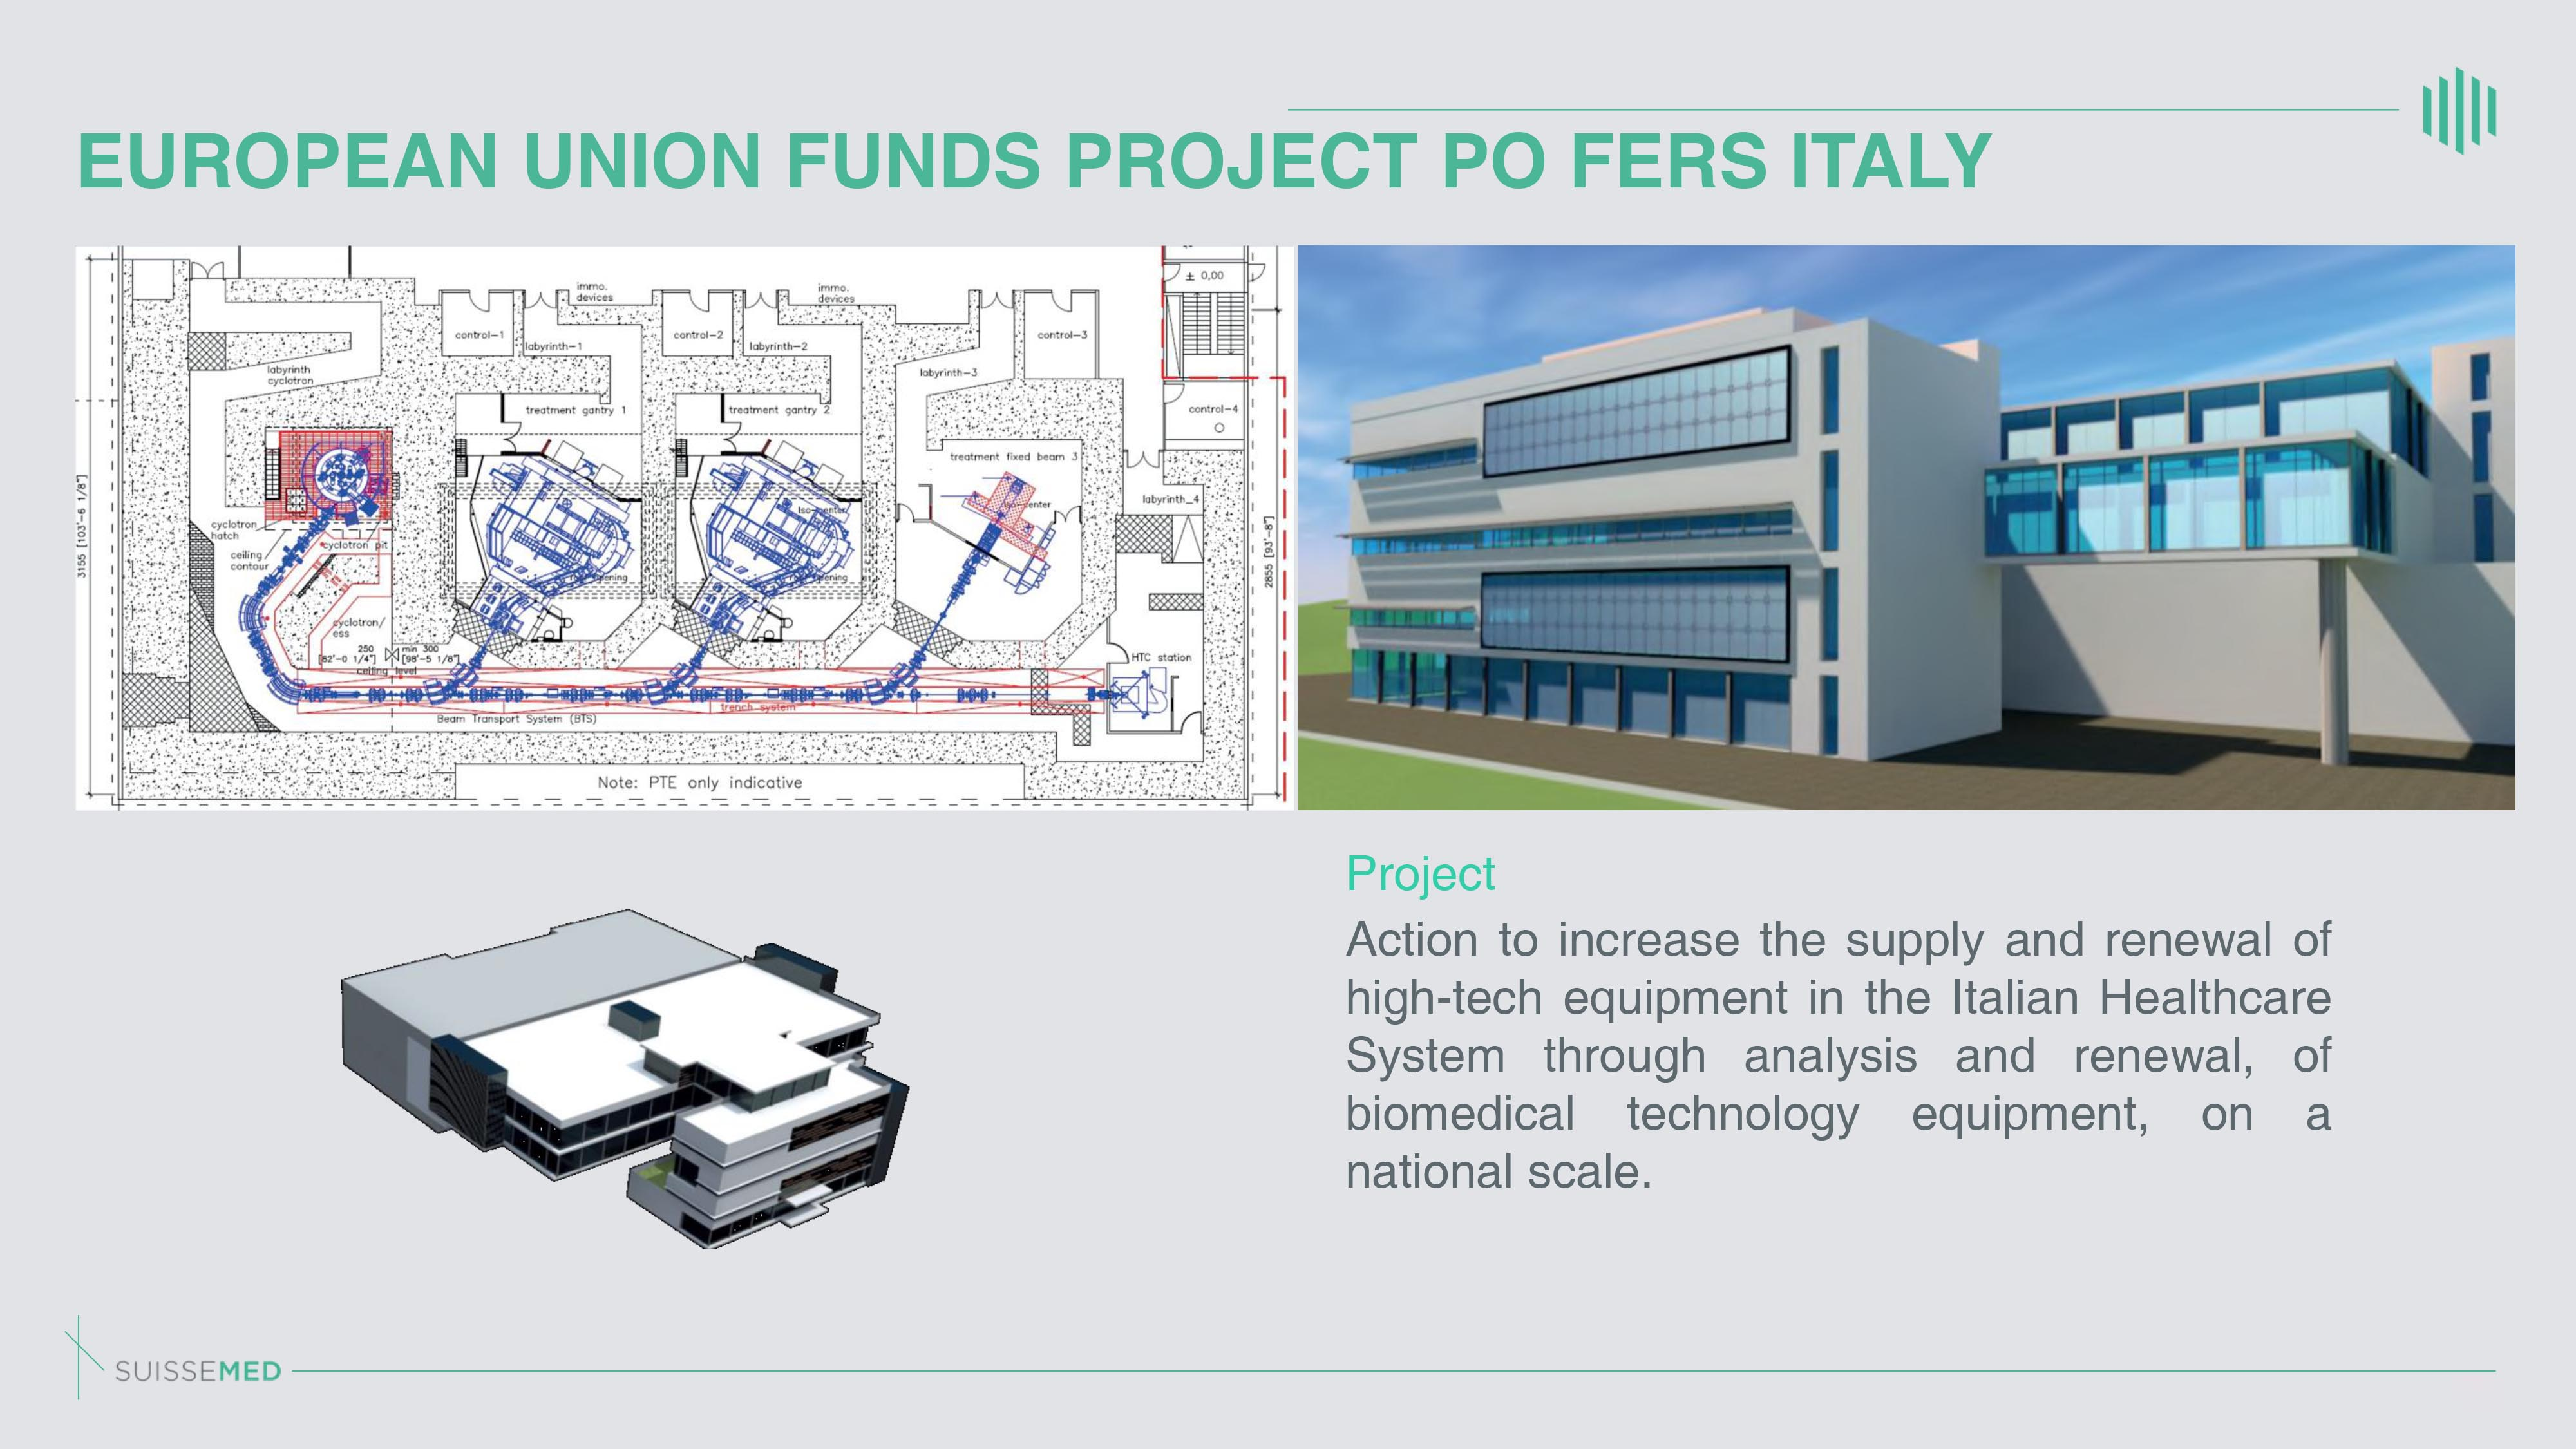 EUROPEAN UNION FUNDS PROJECT PO FERS ITALY